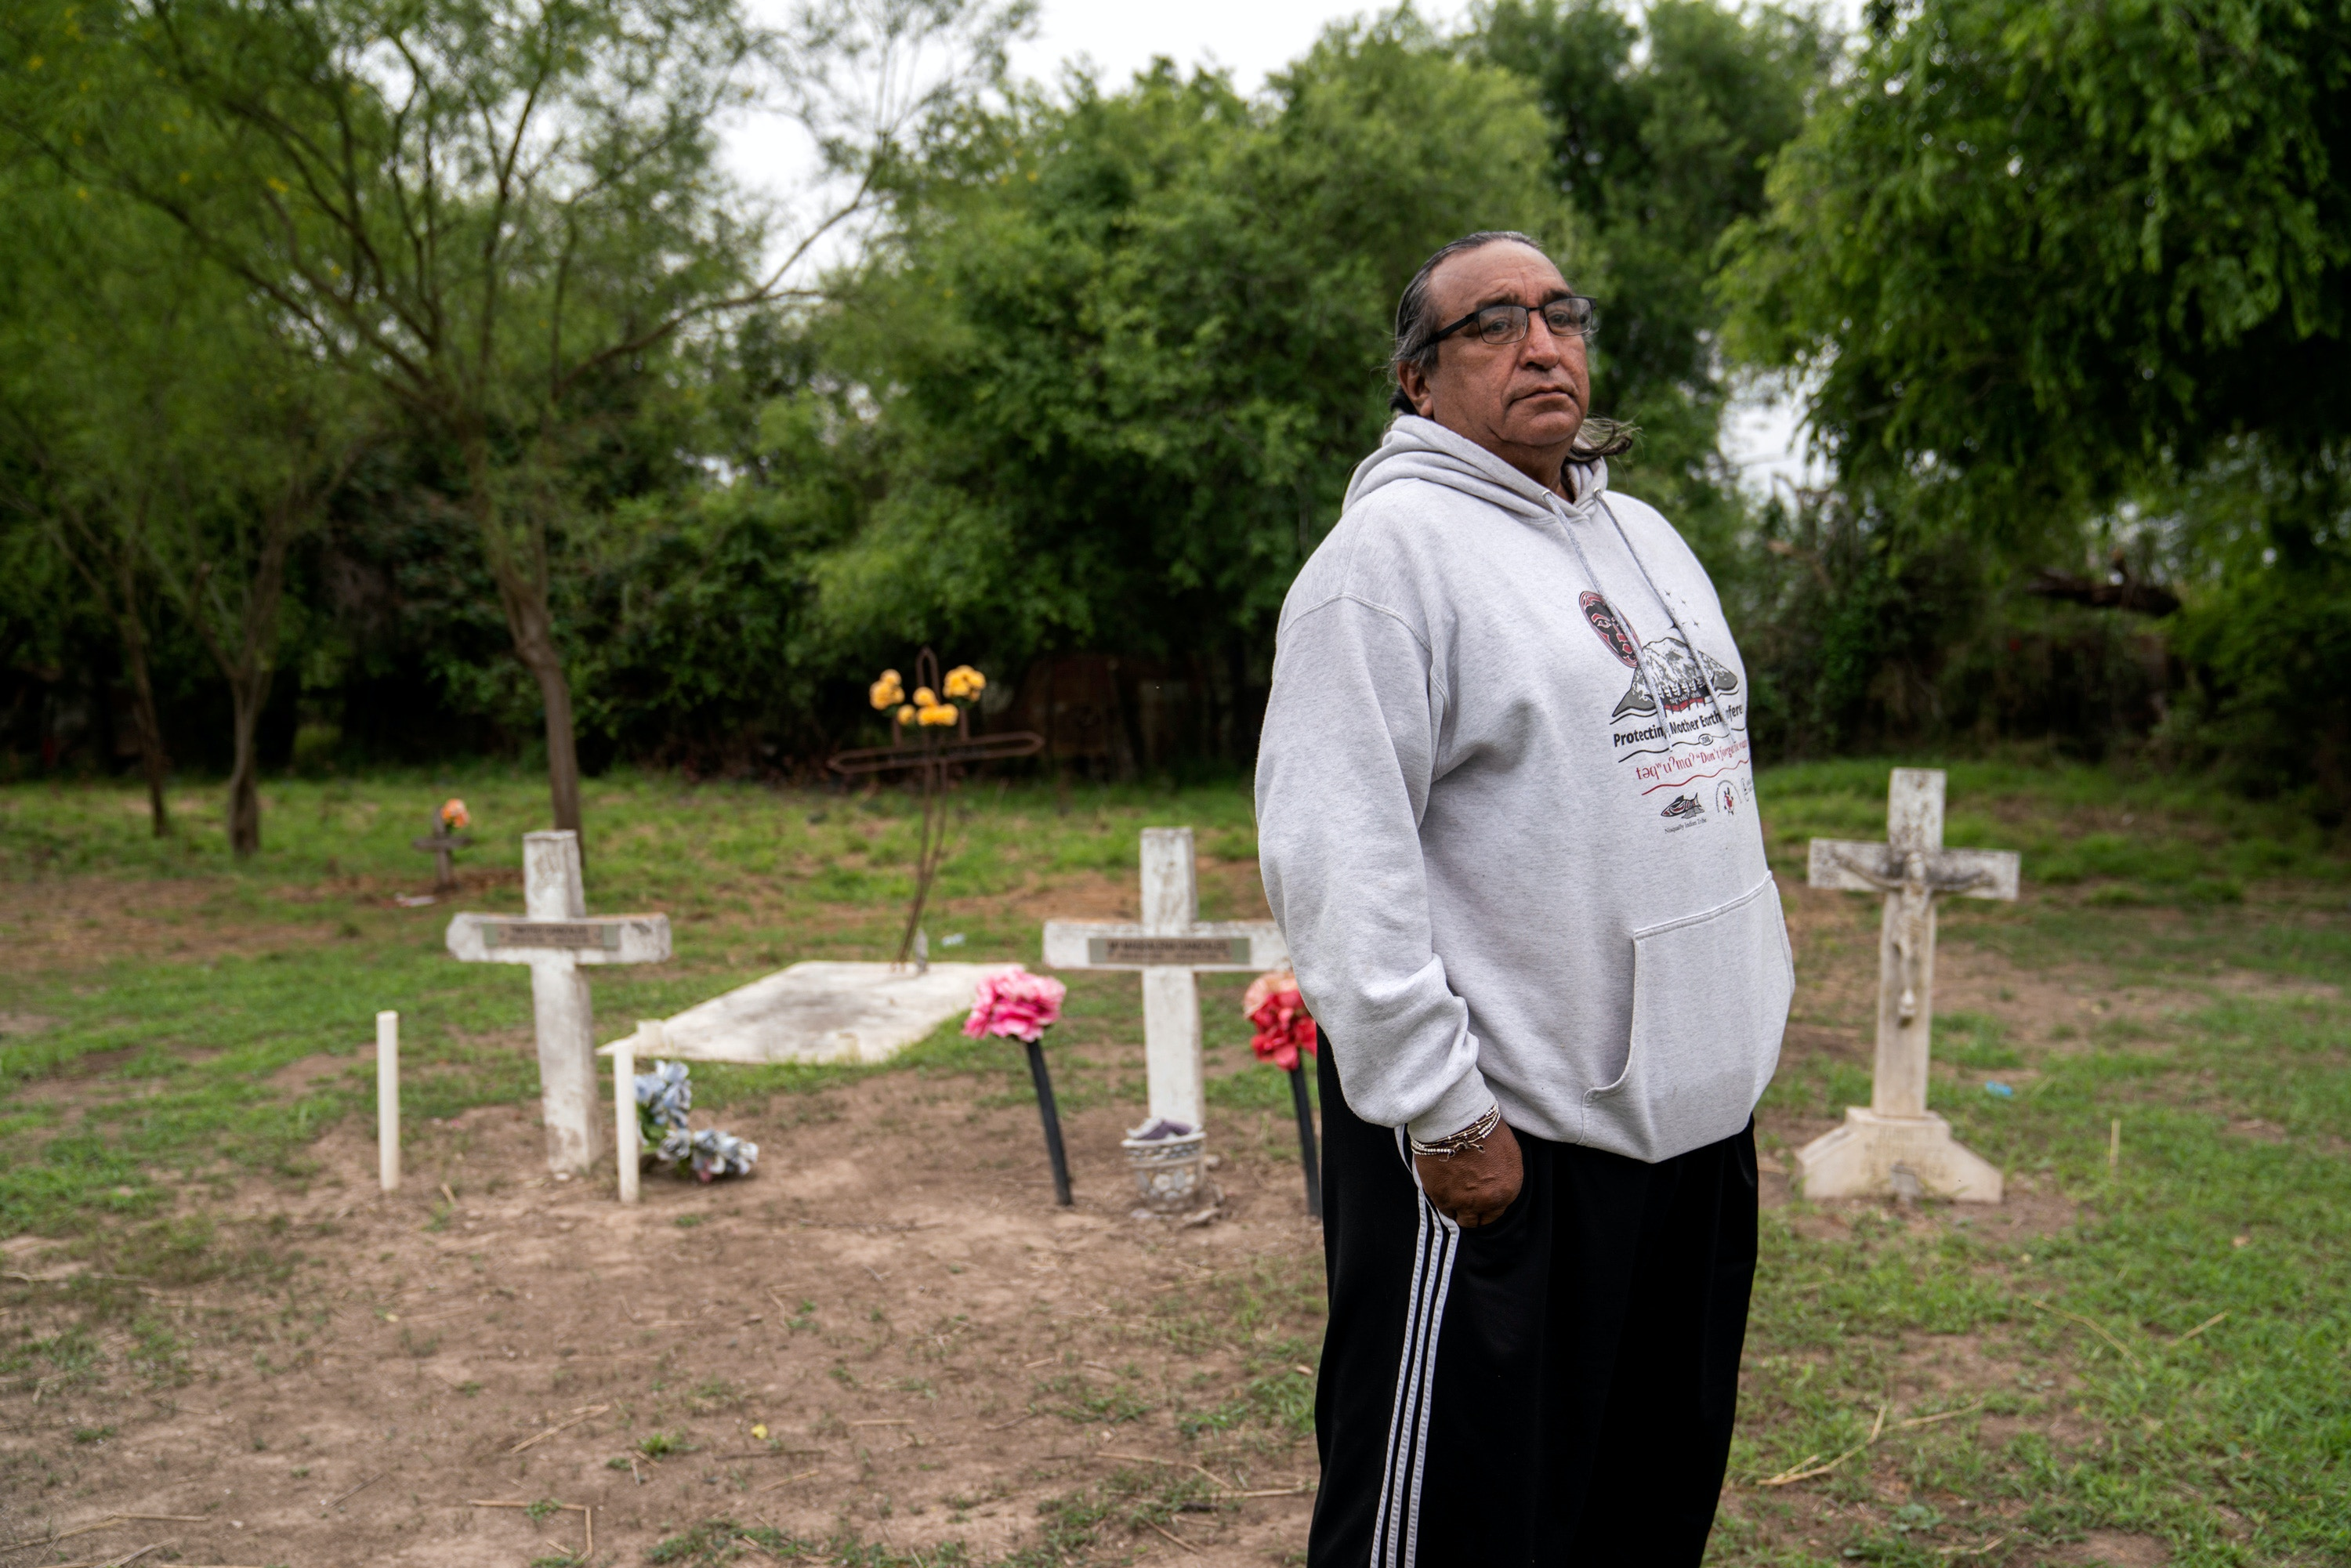 Juan B. Mancias poses for a photo at the Eli Jackson Cemetery in Hidalgo County, Texas on March 17, 2019. Photo: Verónica G. Cárdenas for The Intercept